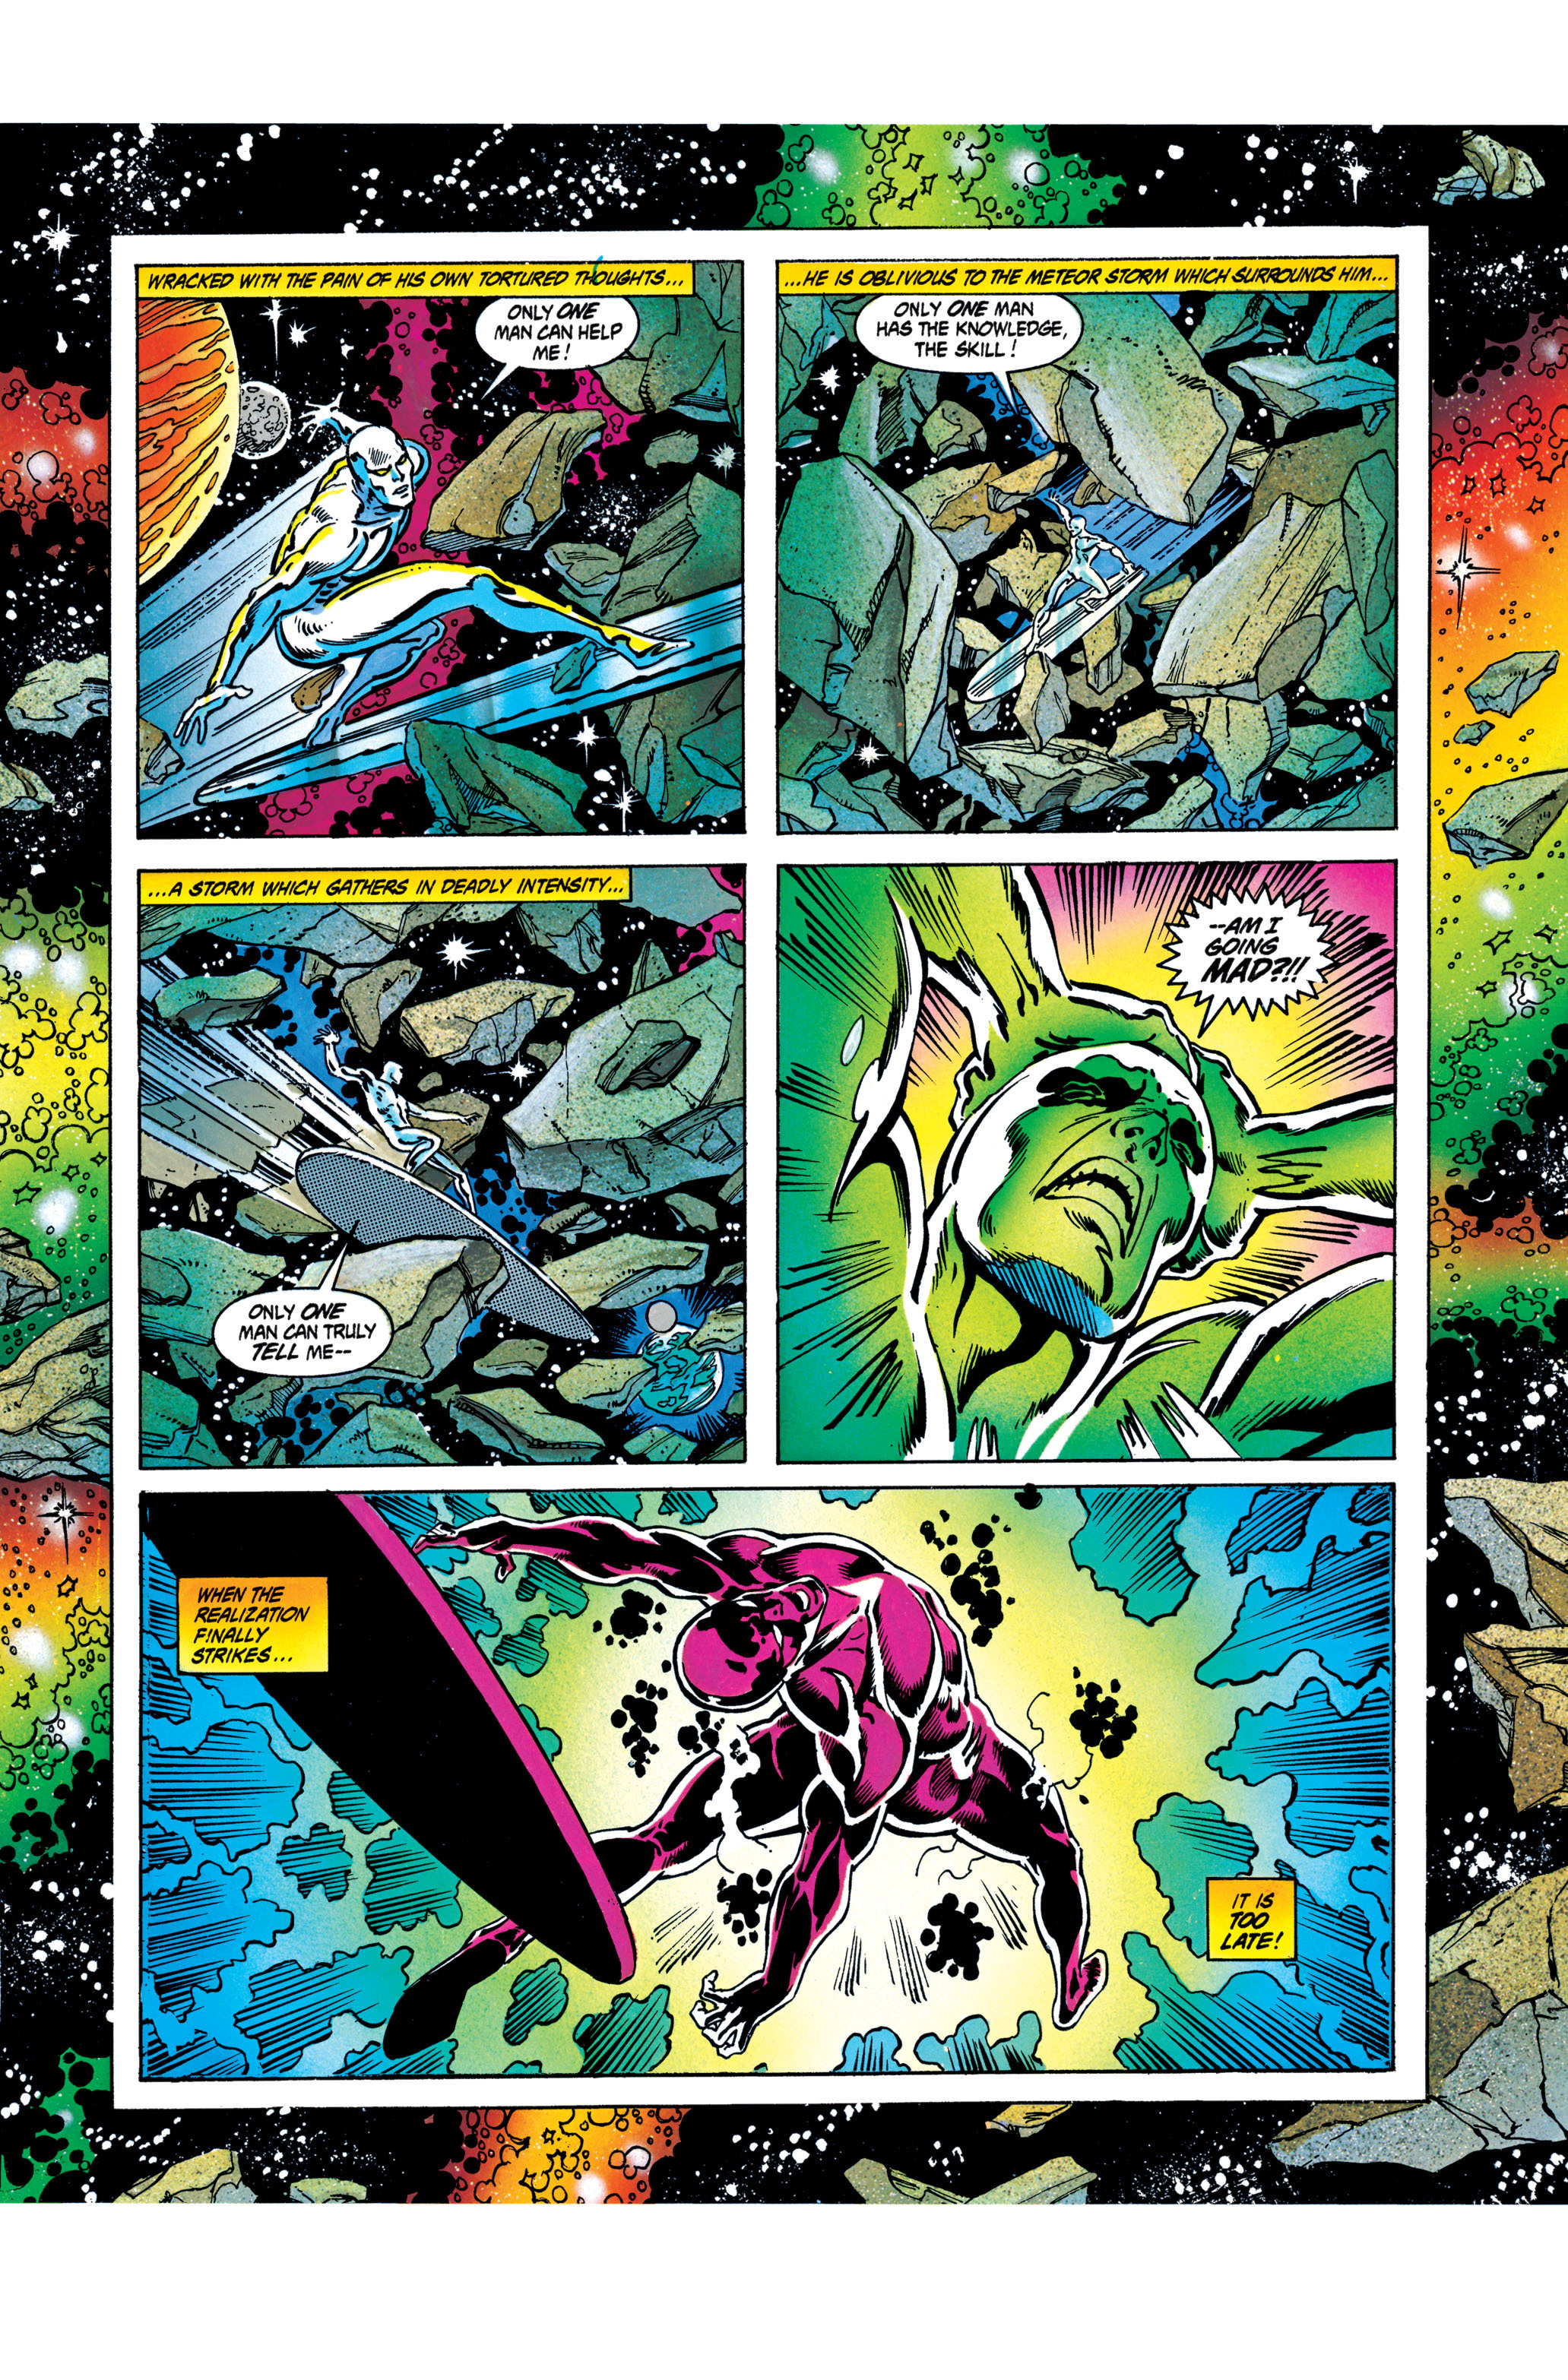 Read online Silver Surfer: Parable comic -  Issue # TPB - 62